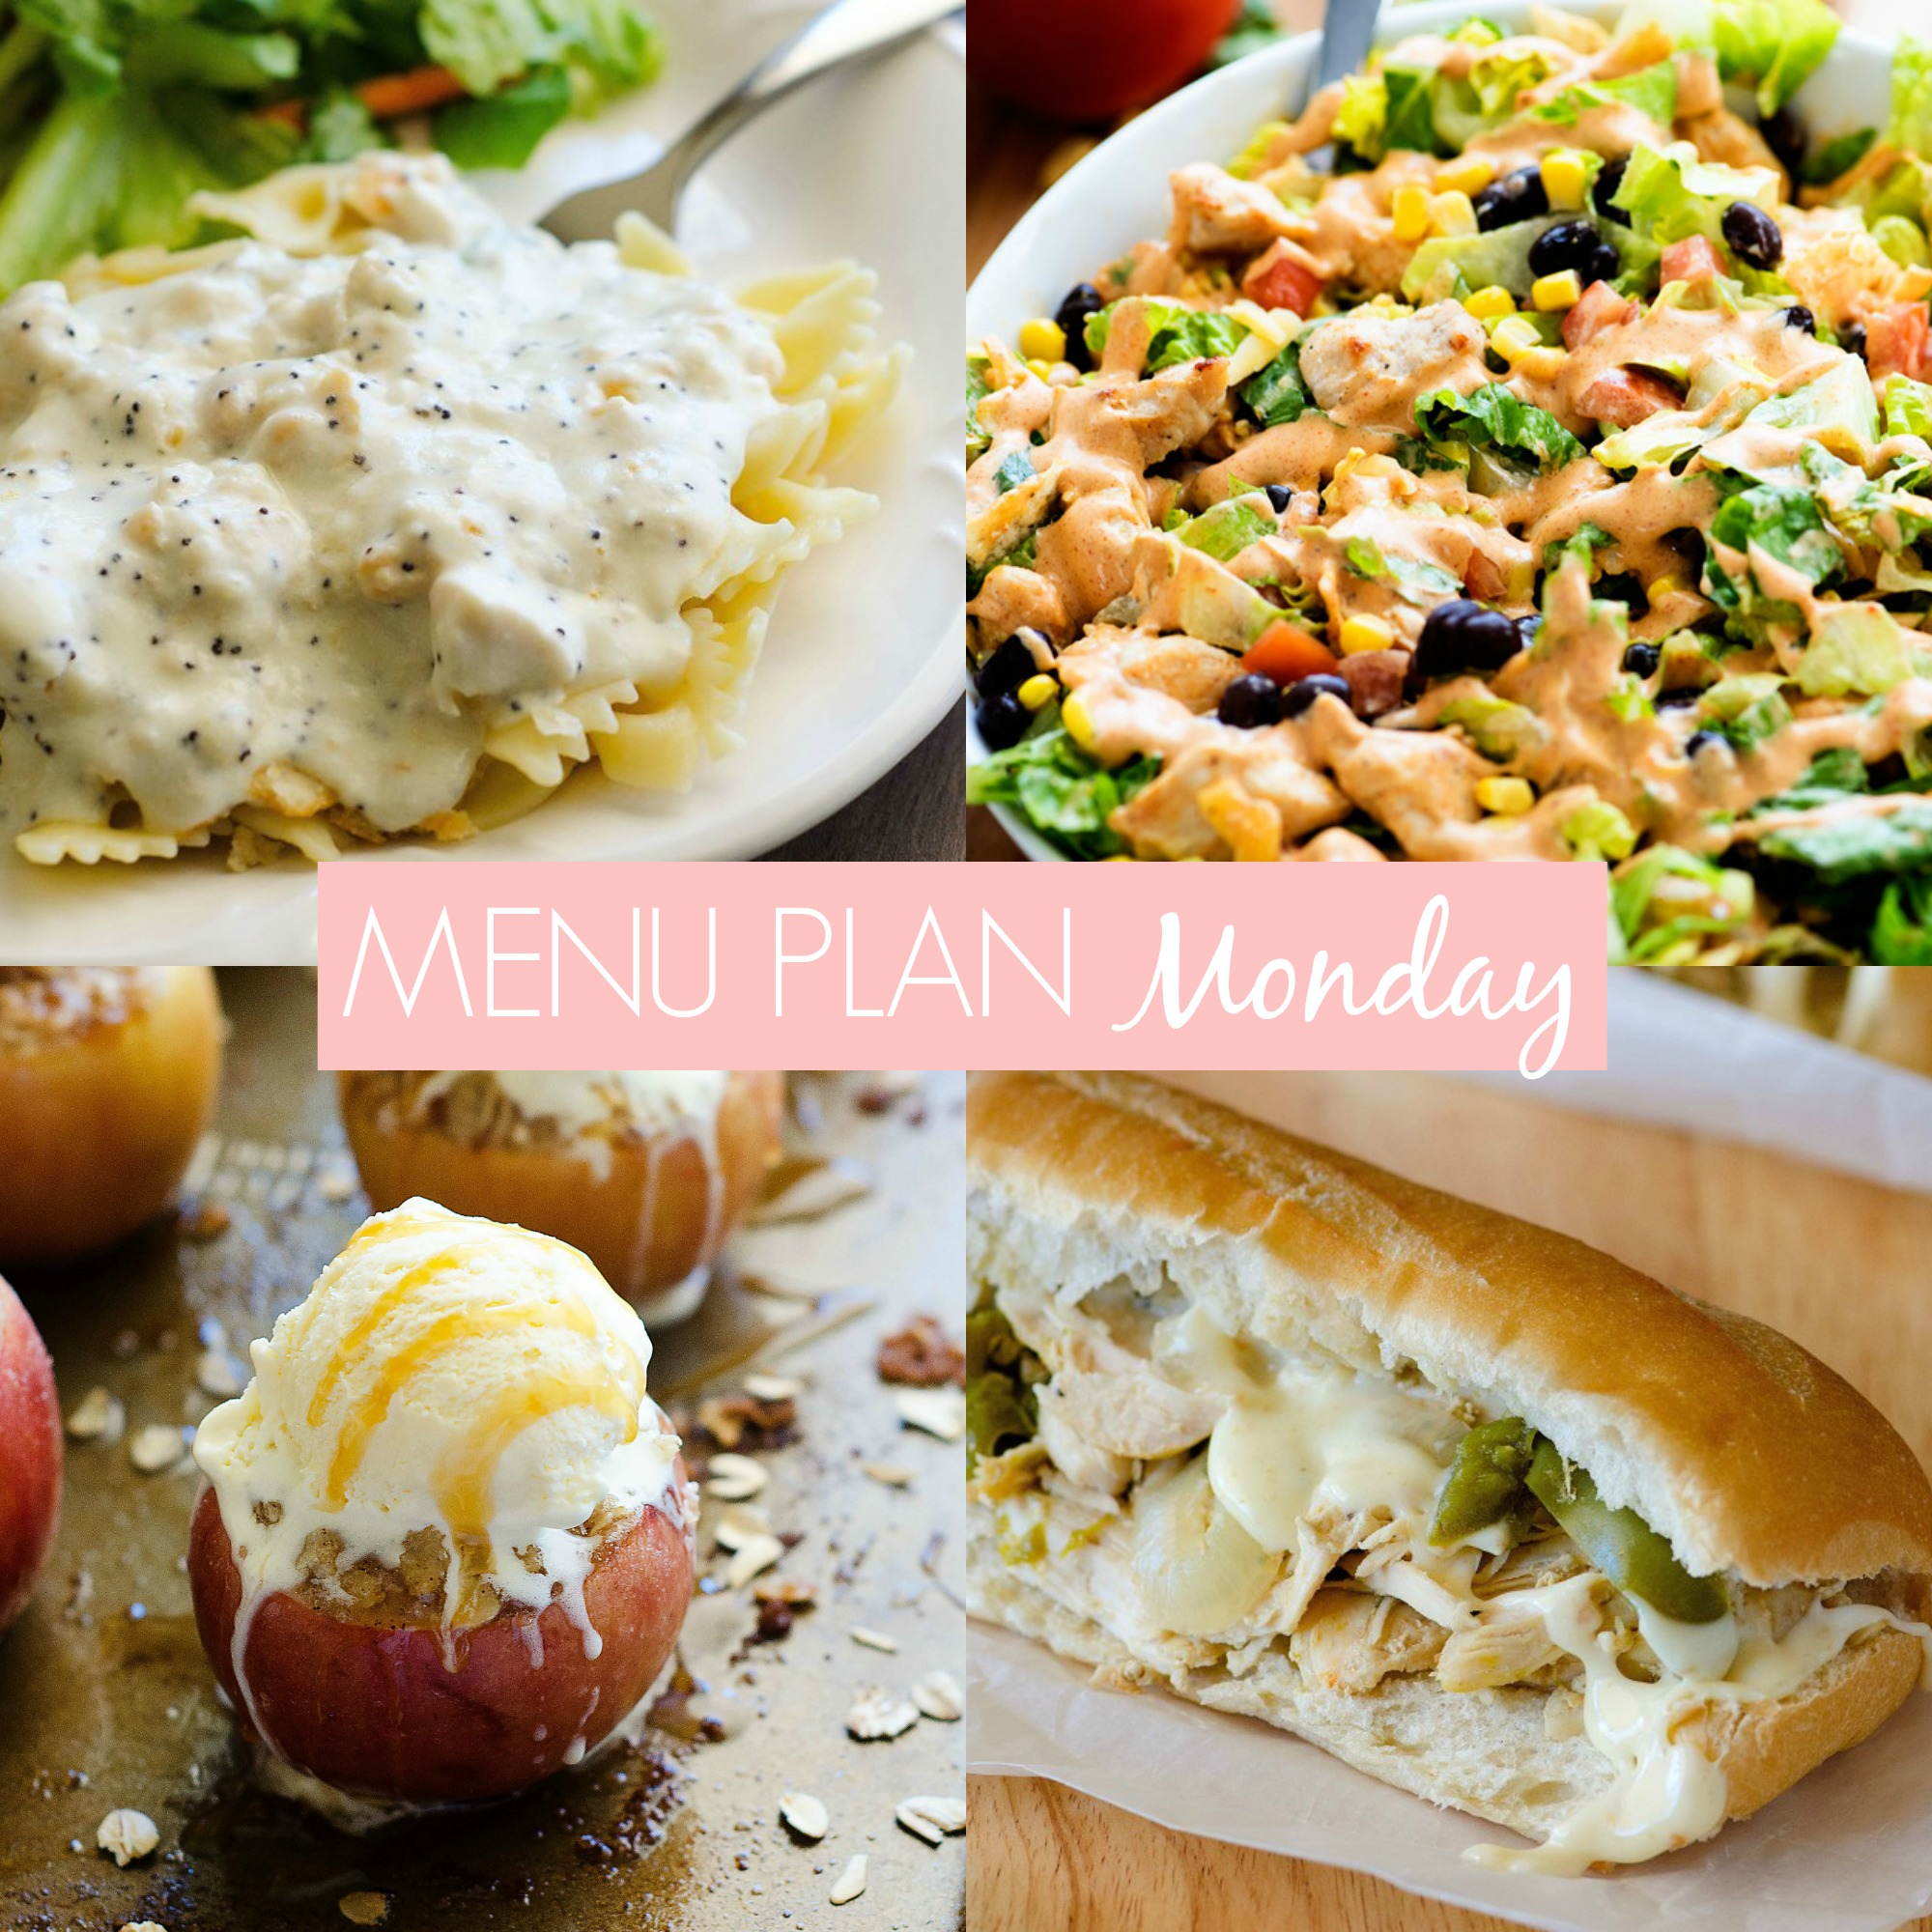 Menu Plan Monday #214